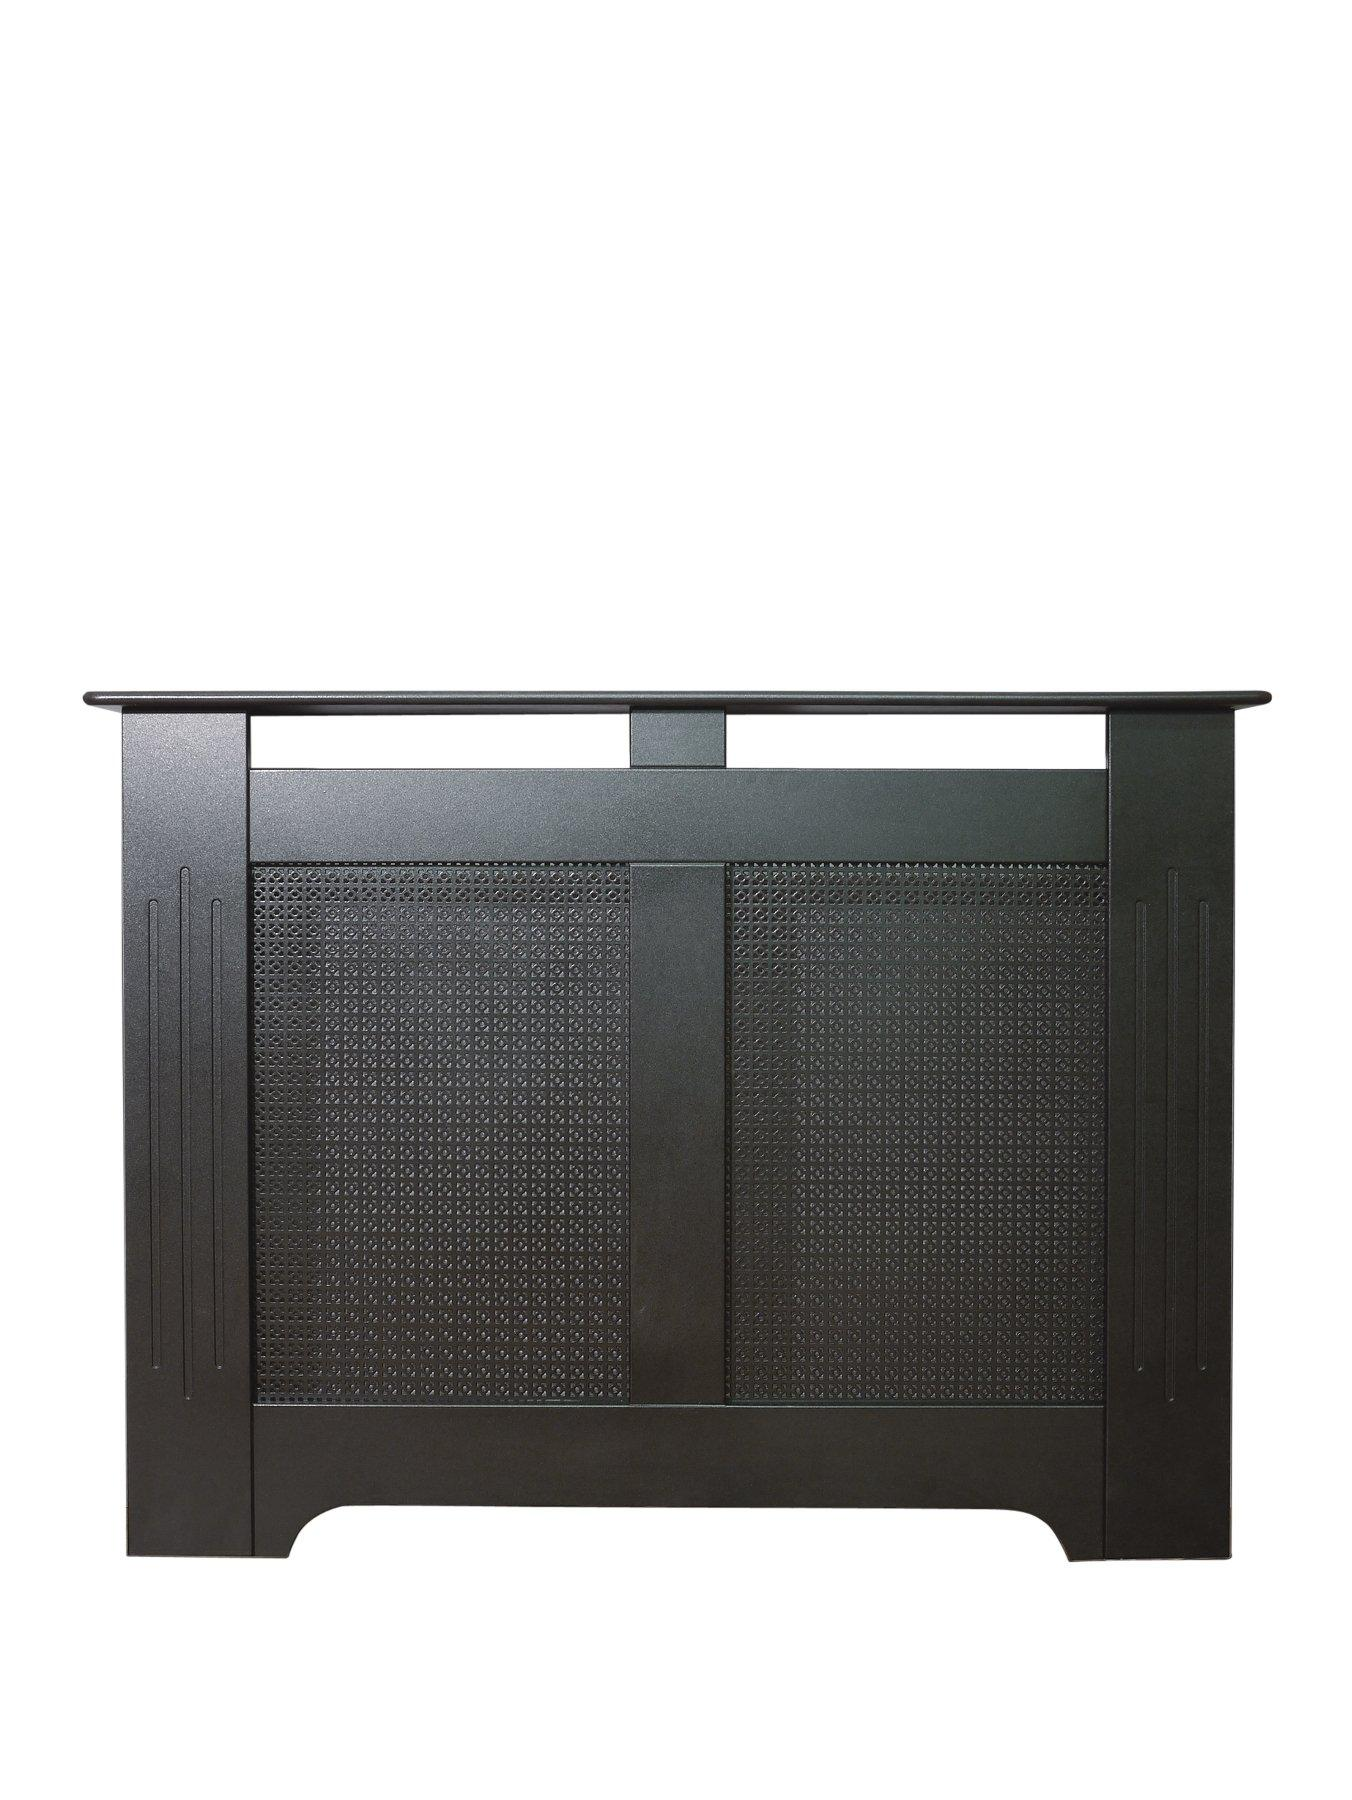 Compare prices for Adam Fire Surrounds 120Cm Black Textured Radiator Cover